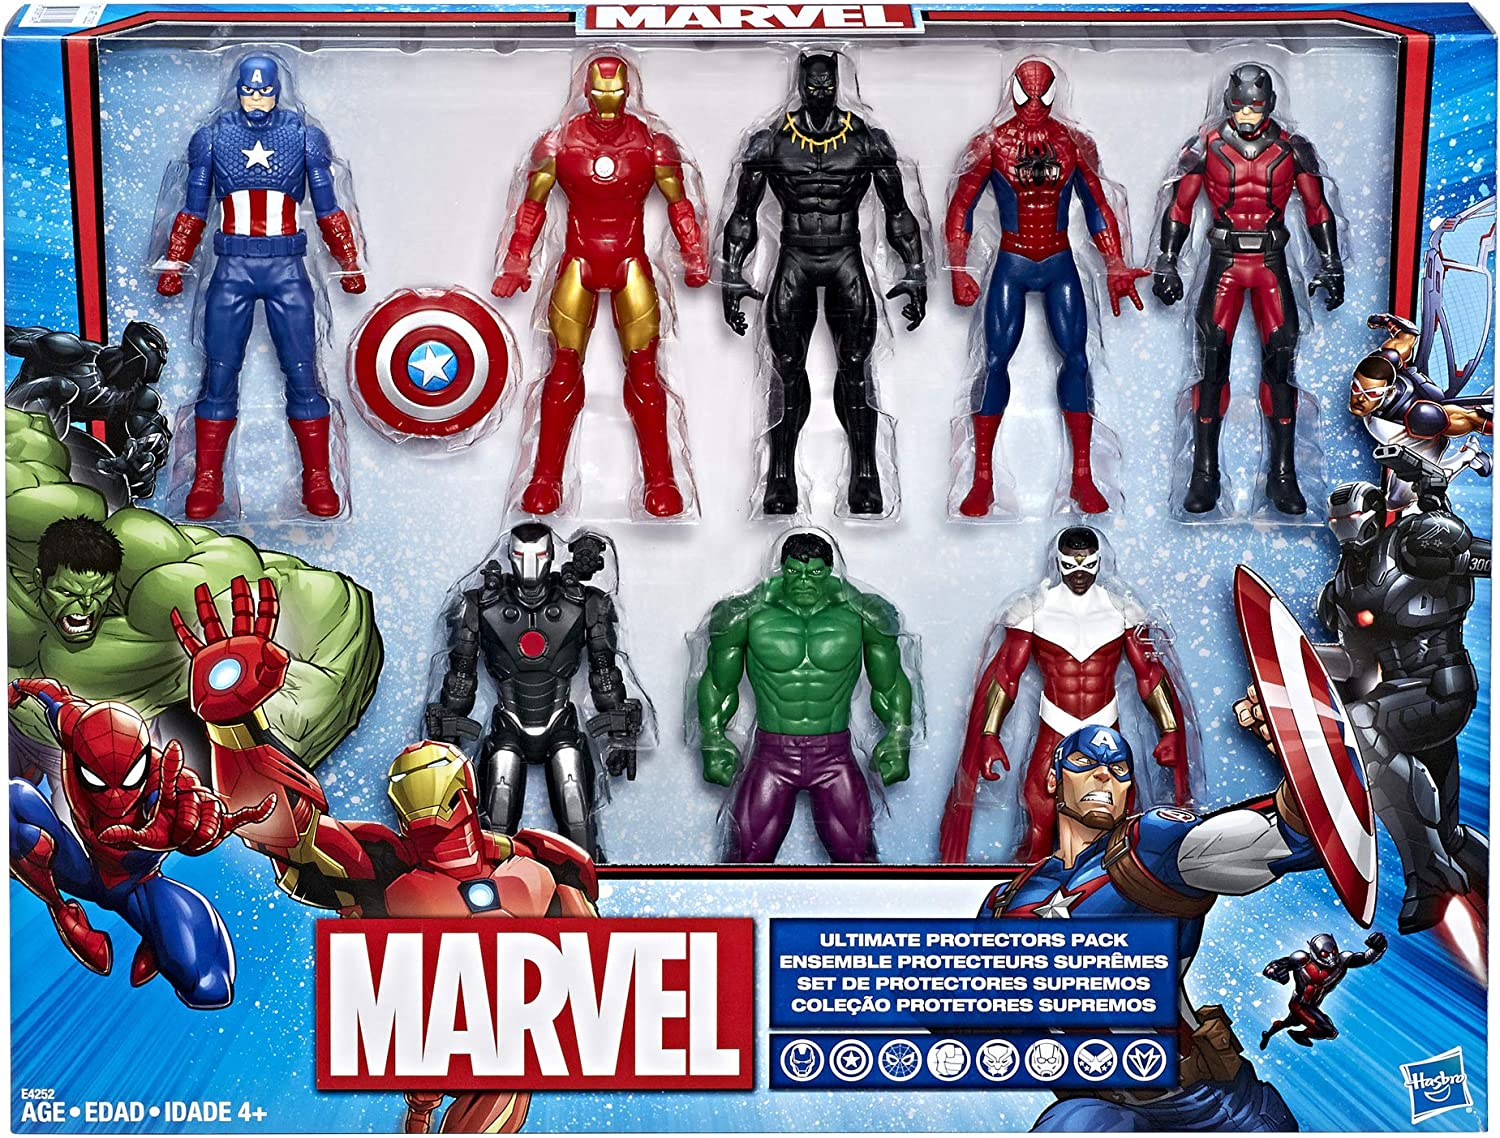 Hasbro Marvel Ultimate Protectors Action Figure 8-Pack: Amazon.es: Juguetes y juegos